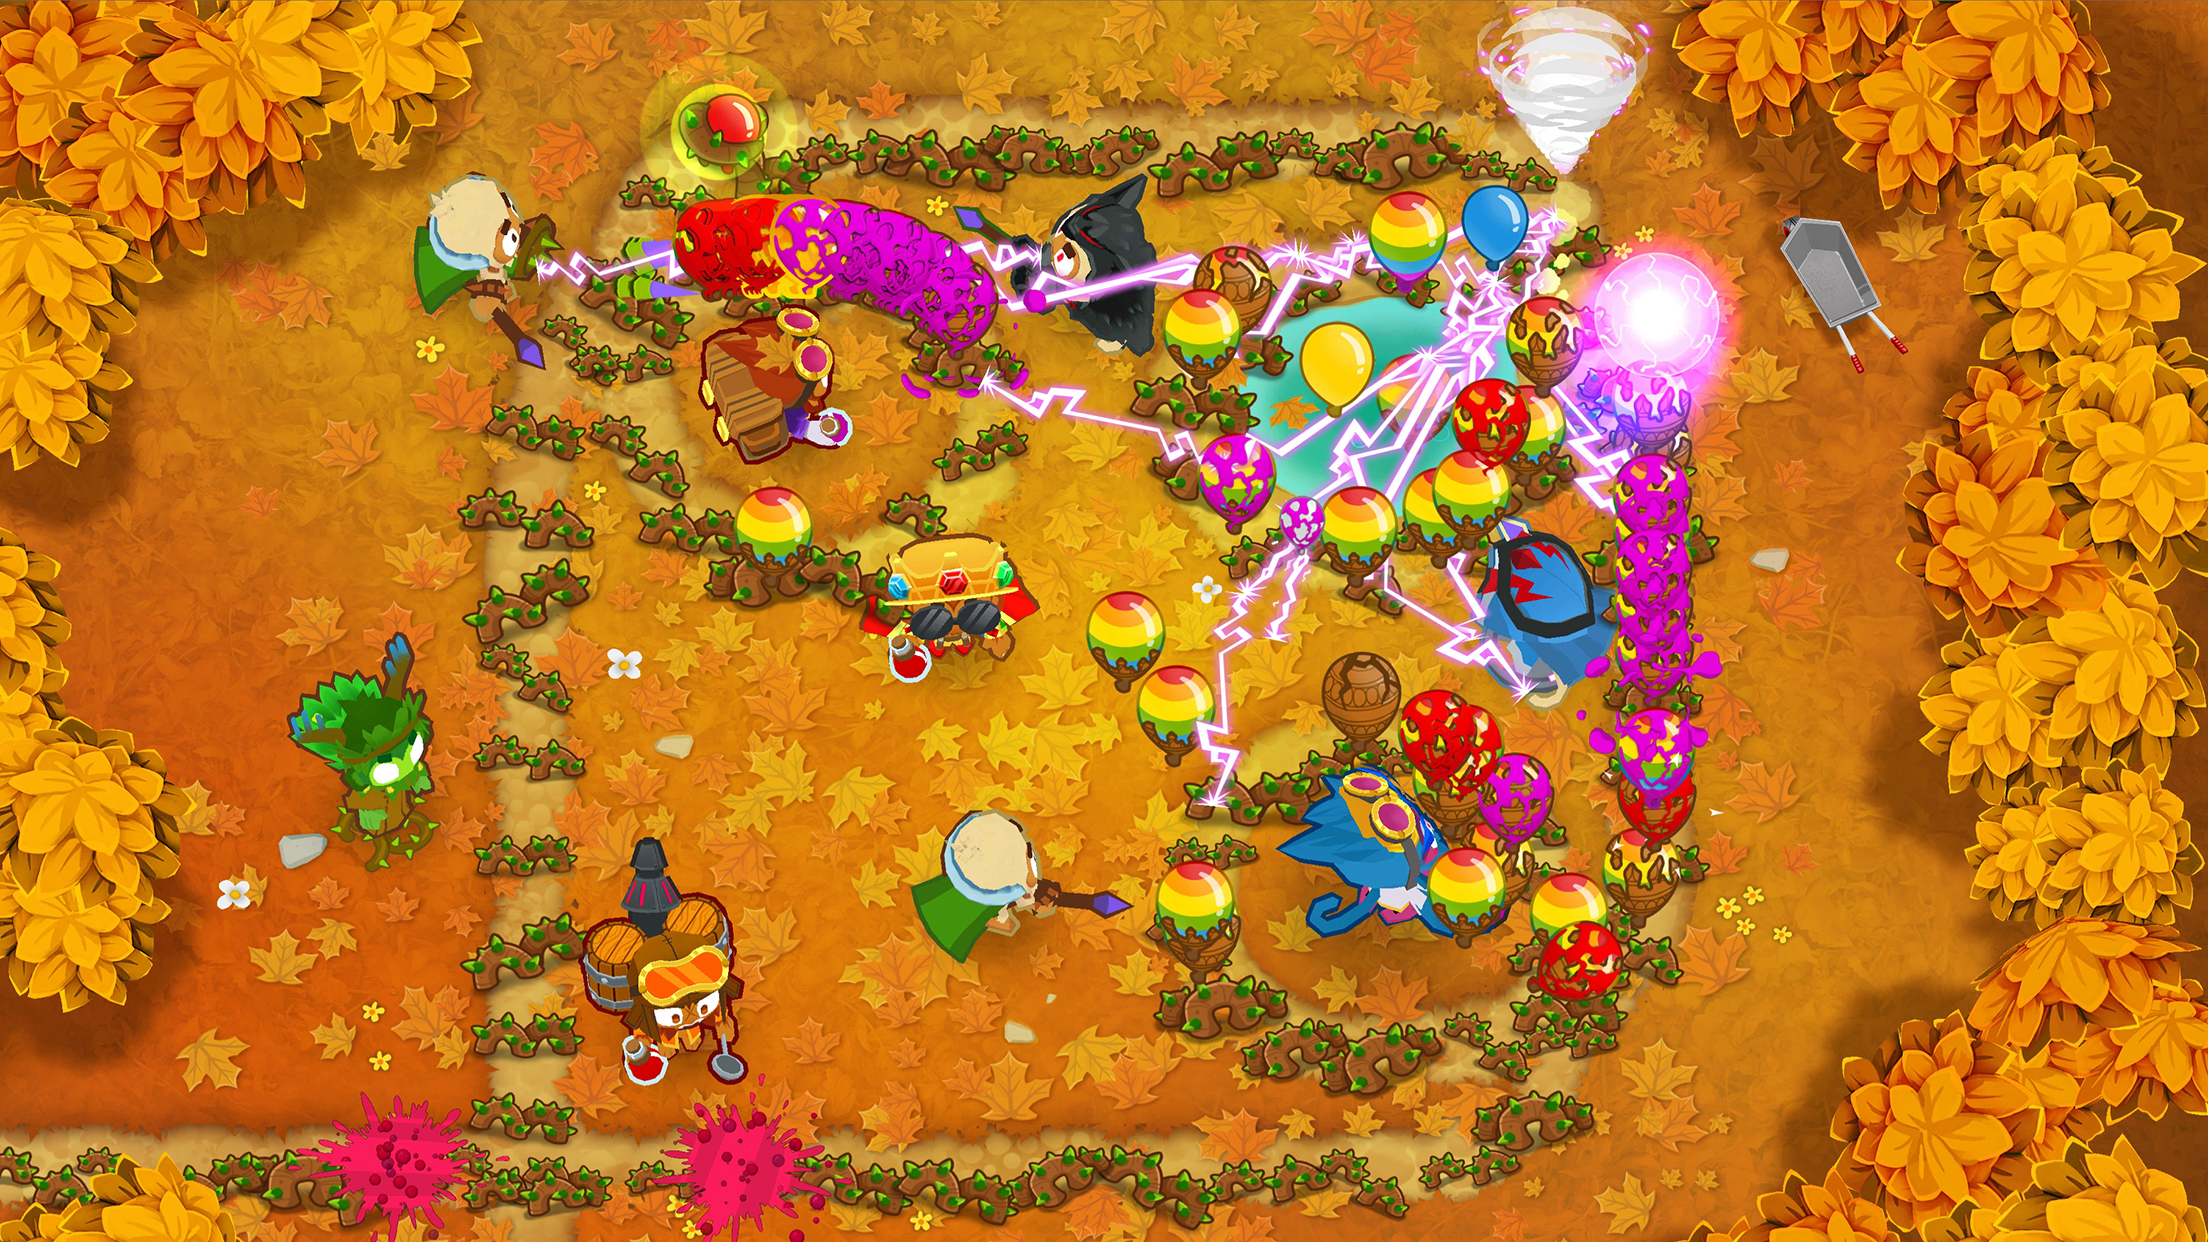 Bloons TD 6 · AppID: 960090